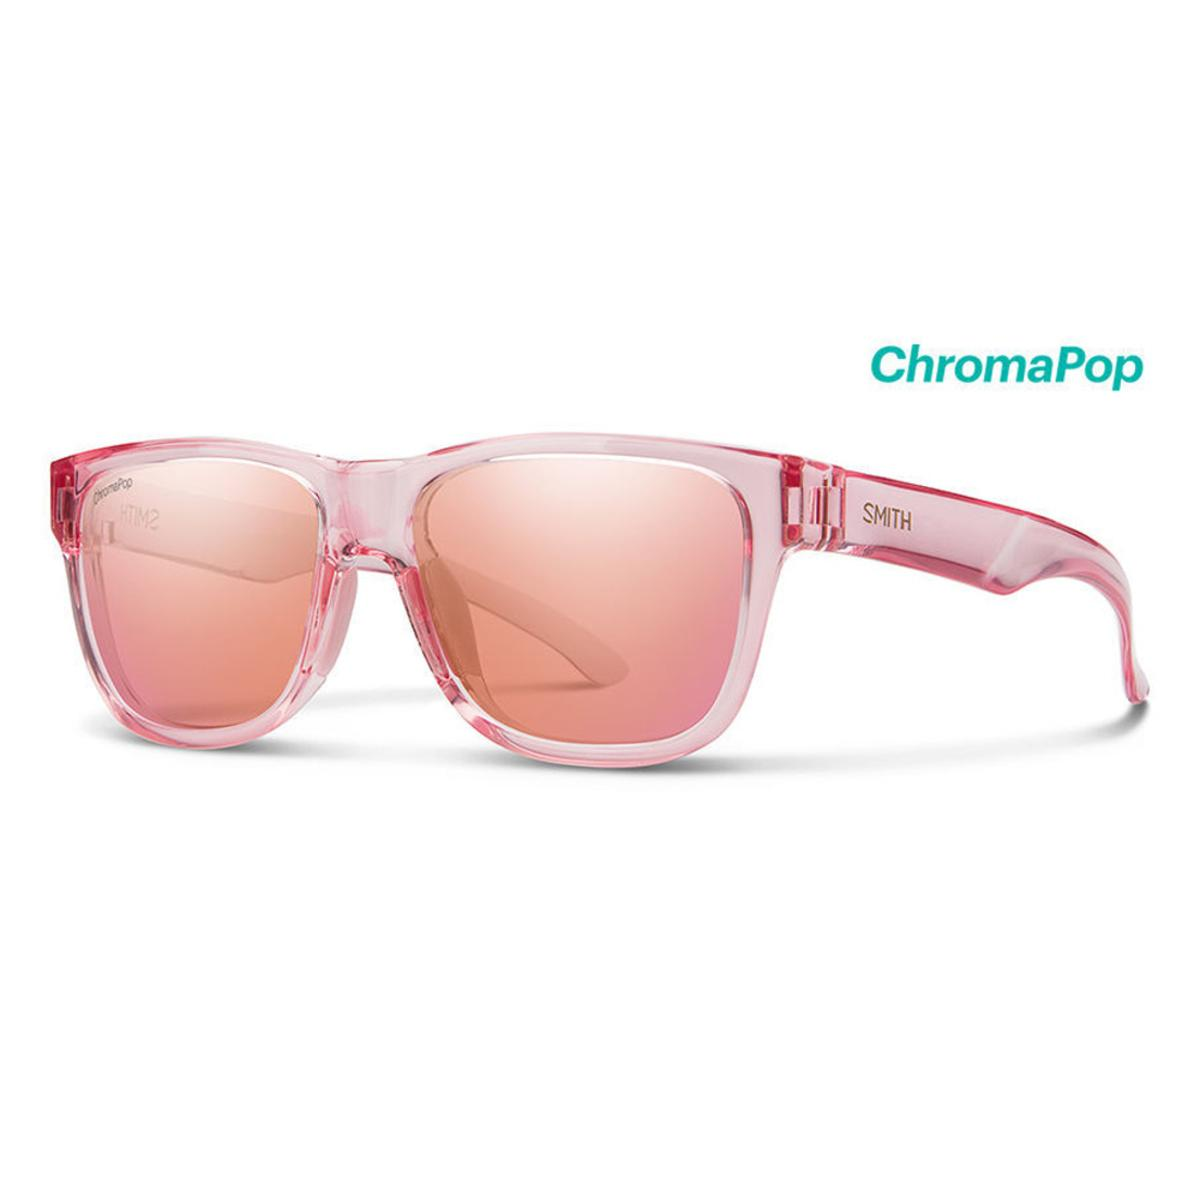 0f6d6e929d9 Smith Optics Lowdown Slim 2 Sunglasses Chromapop Contrast Rose Flash - Pink  Crystal Frame - The Warming Store